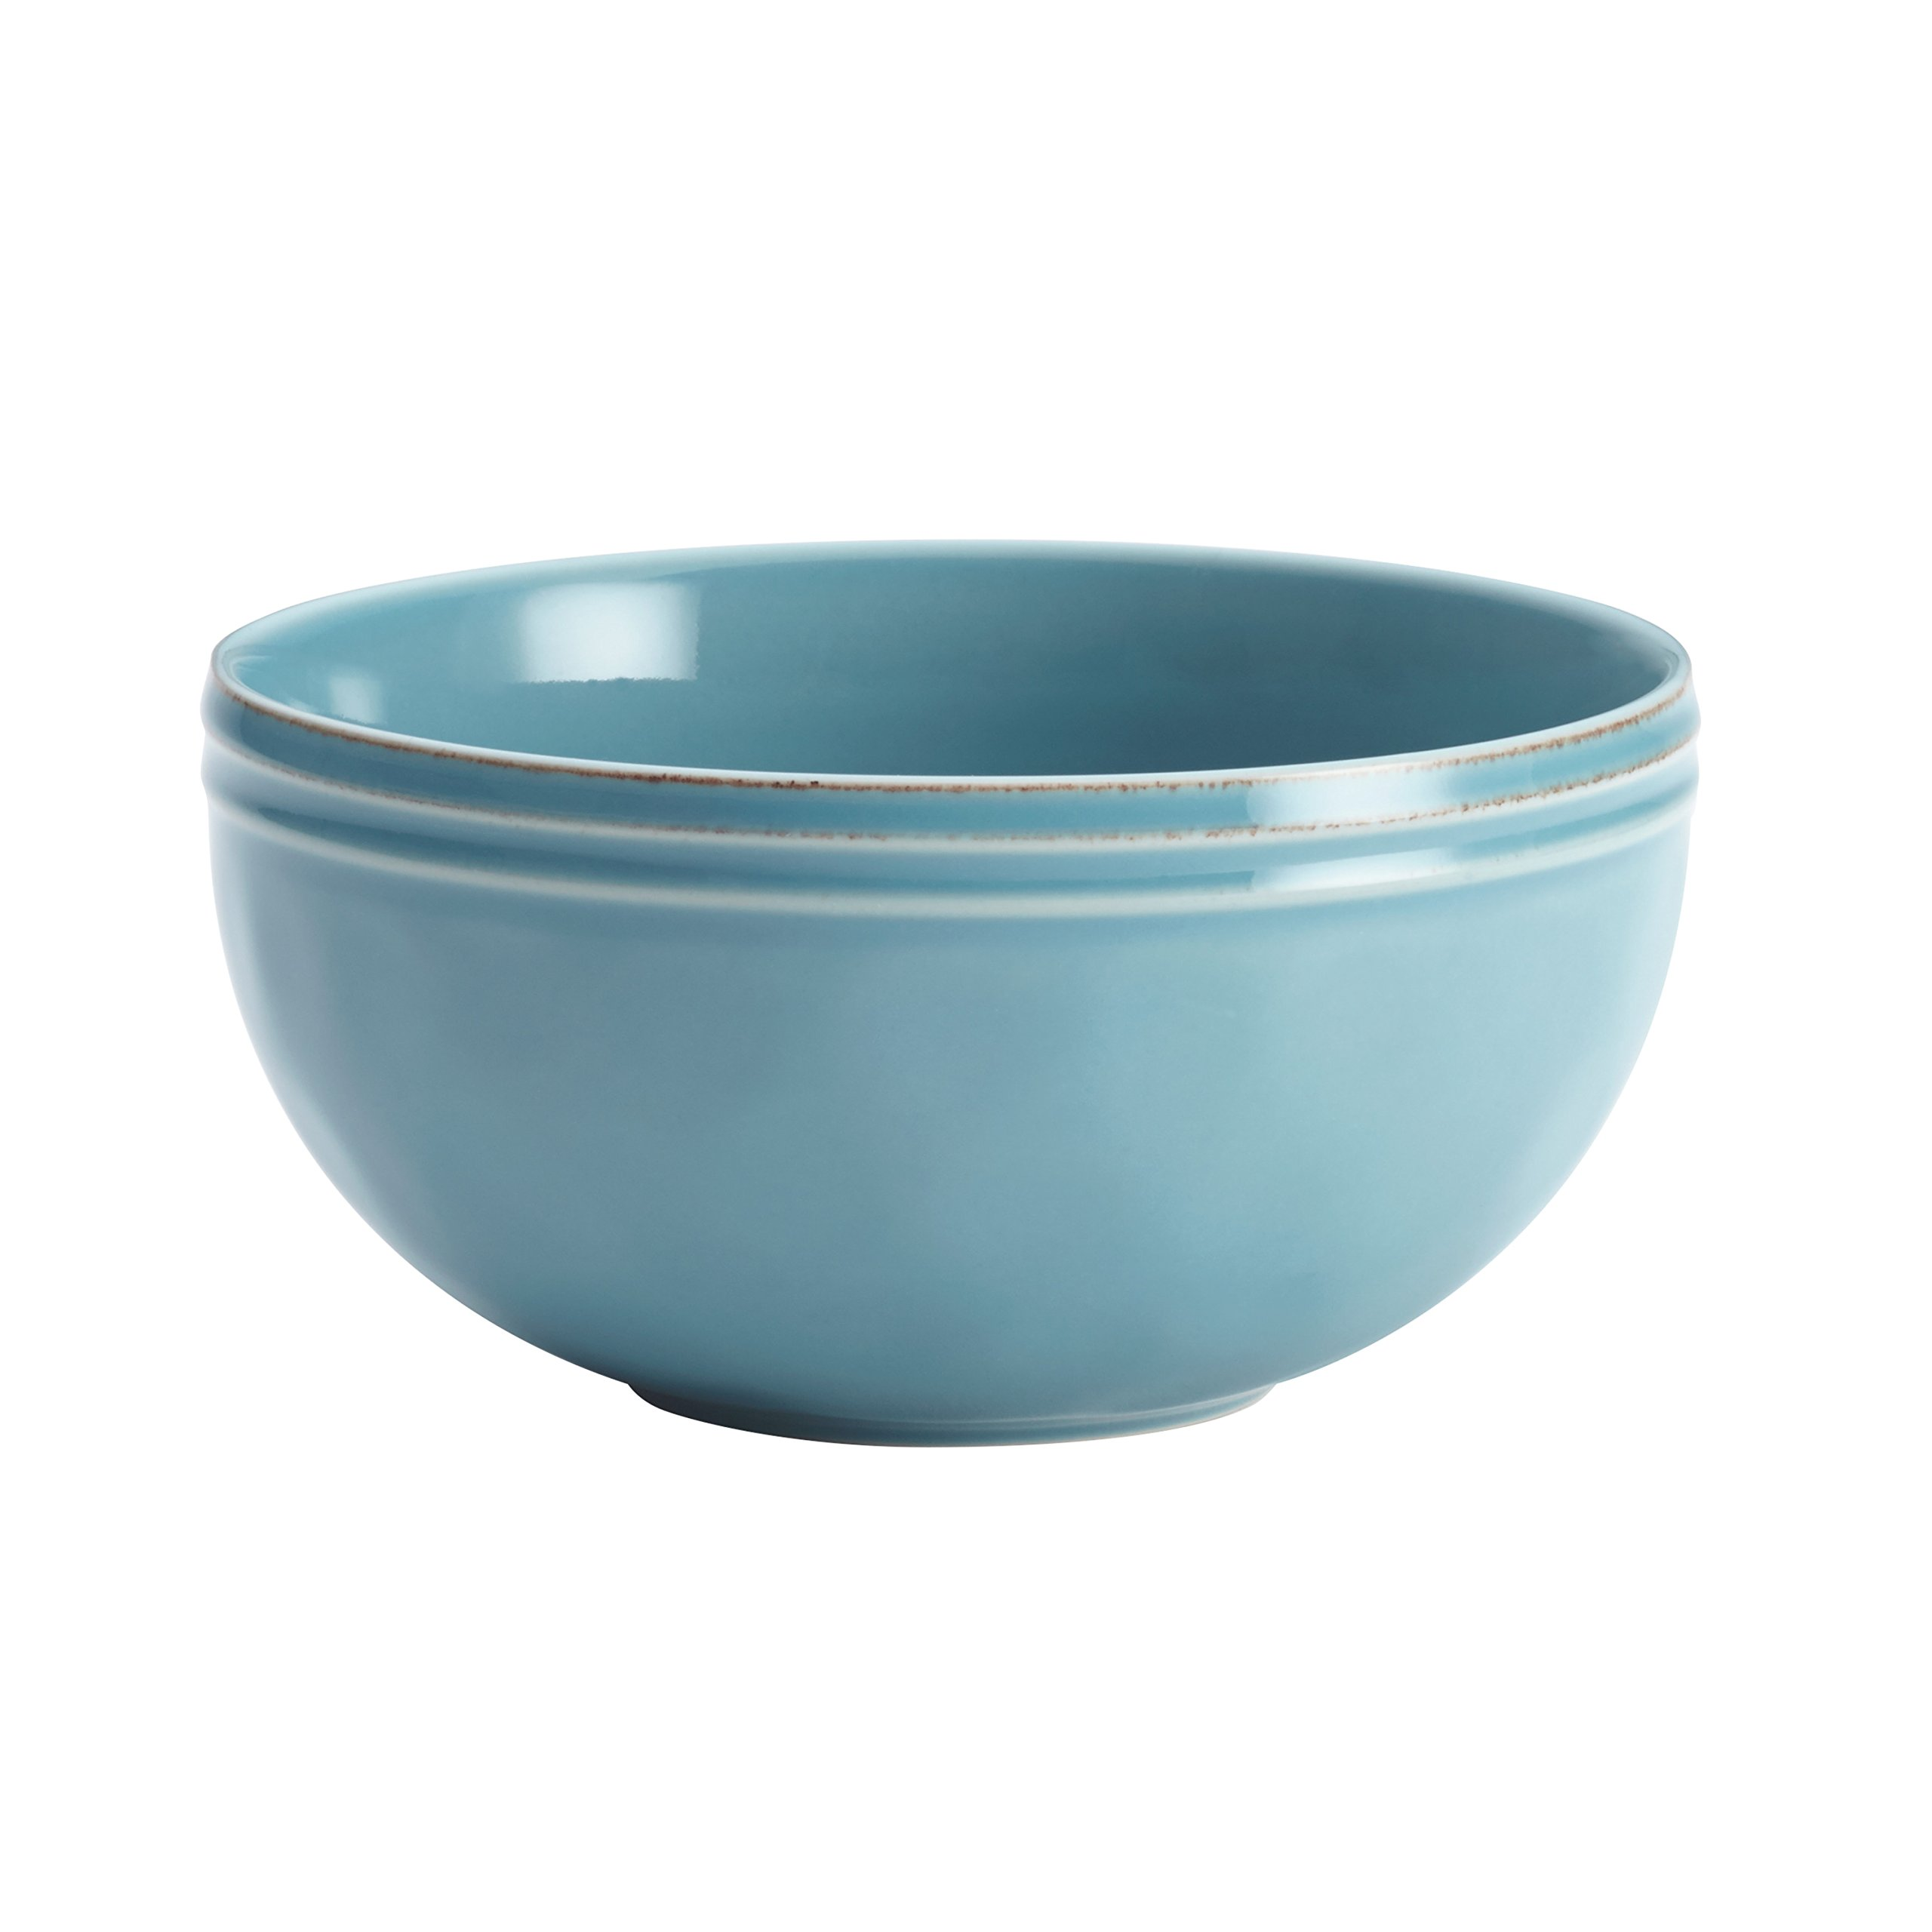 Rachael Ray Cucina Dinnerware 16-Piece Stoneware Dinnerware Set, Agave Blue by Rachael Ray (Image #10)